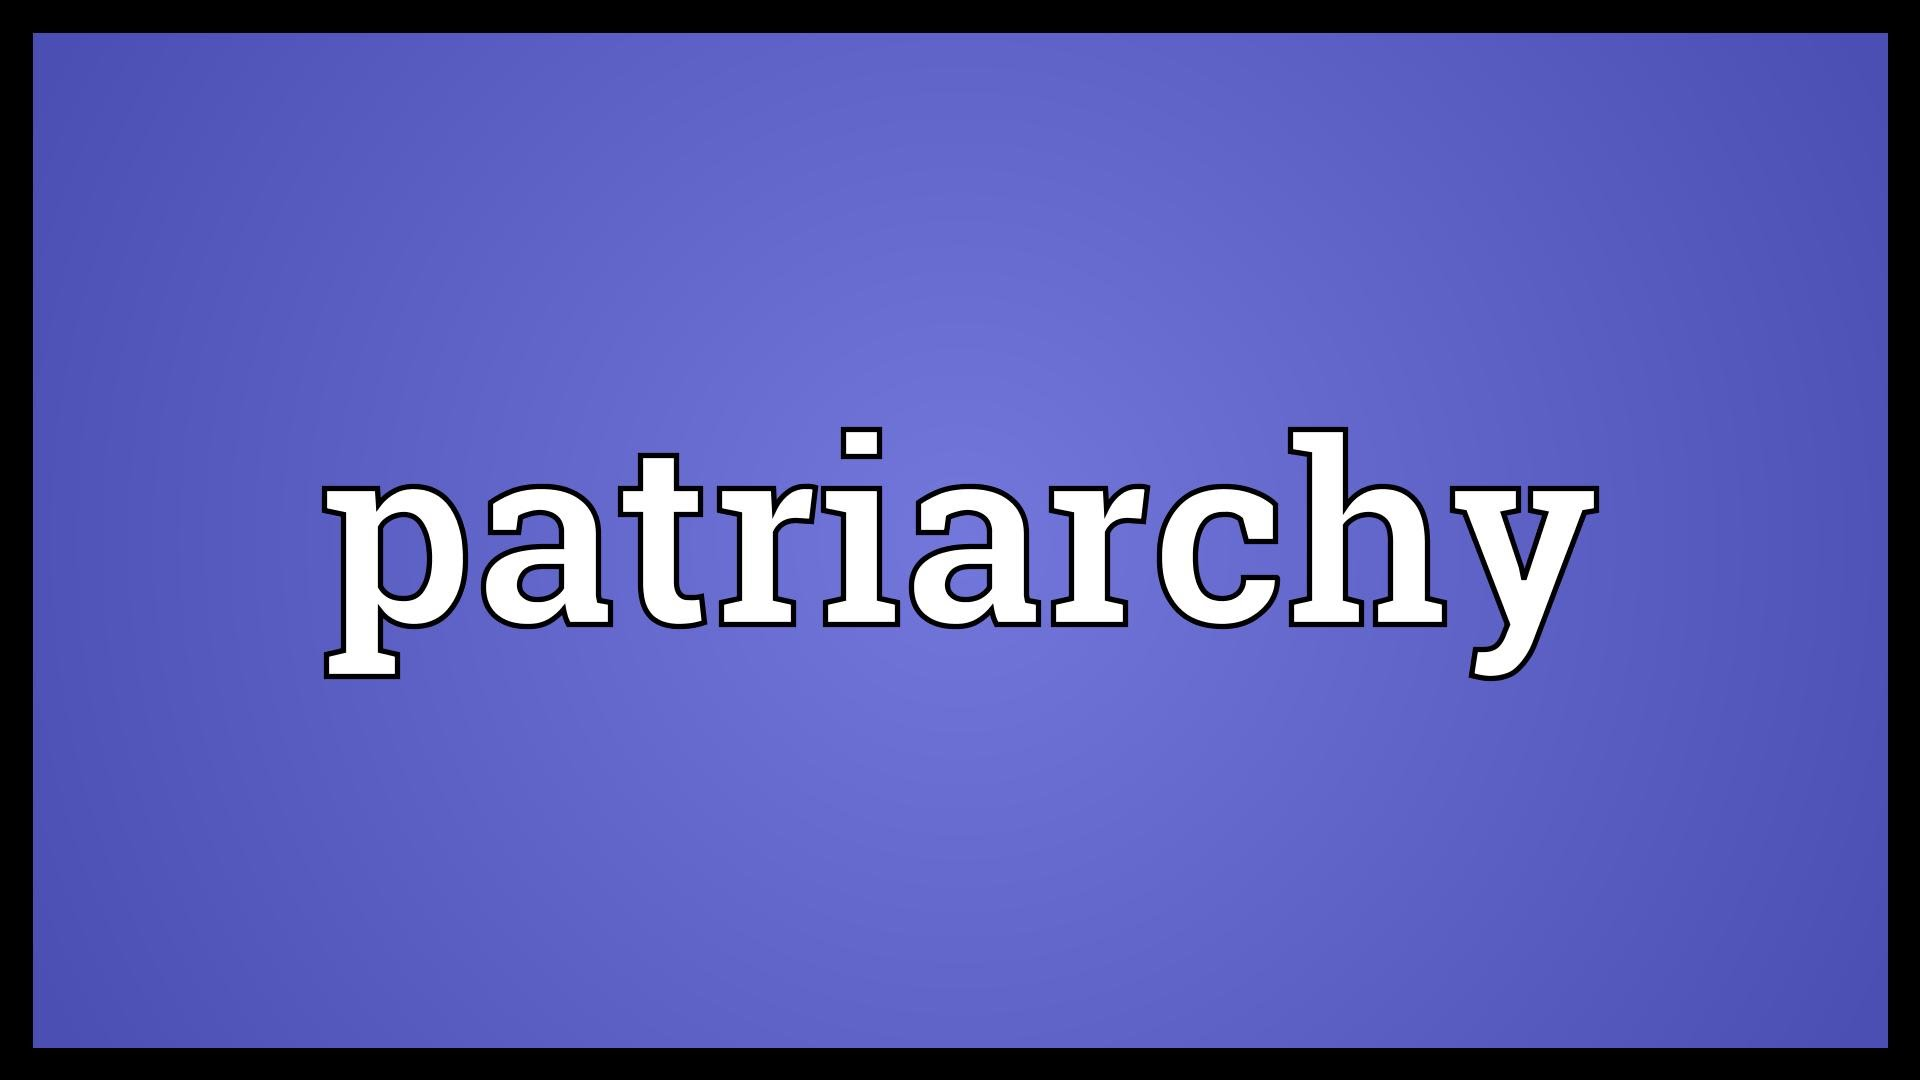 Complementarian Patriarchy and Fundamentalist Patriarchy are Both Harmful; But How are They Different?